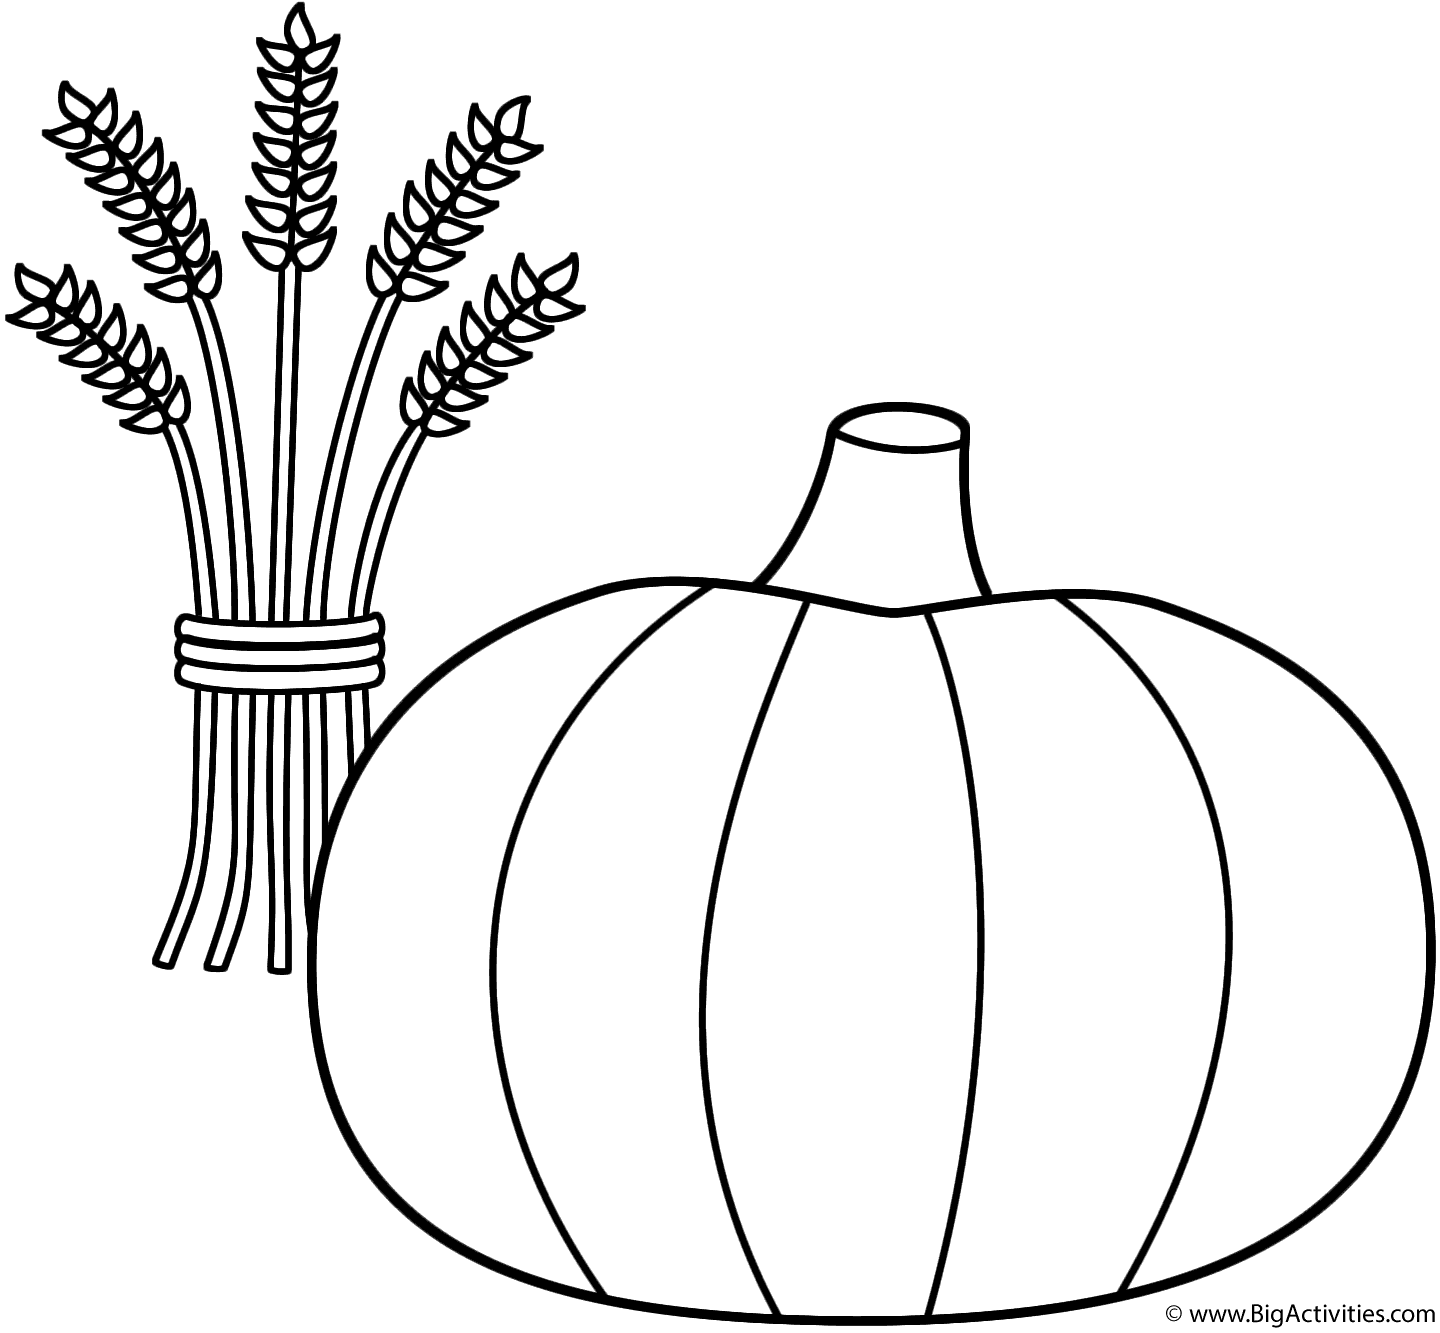 coloring page | Fabulous Fall and Awesome Autumn | Pinterest ...